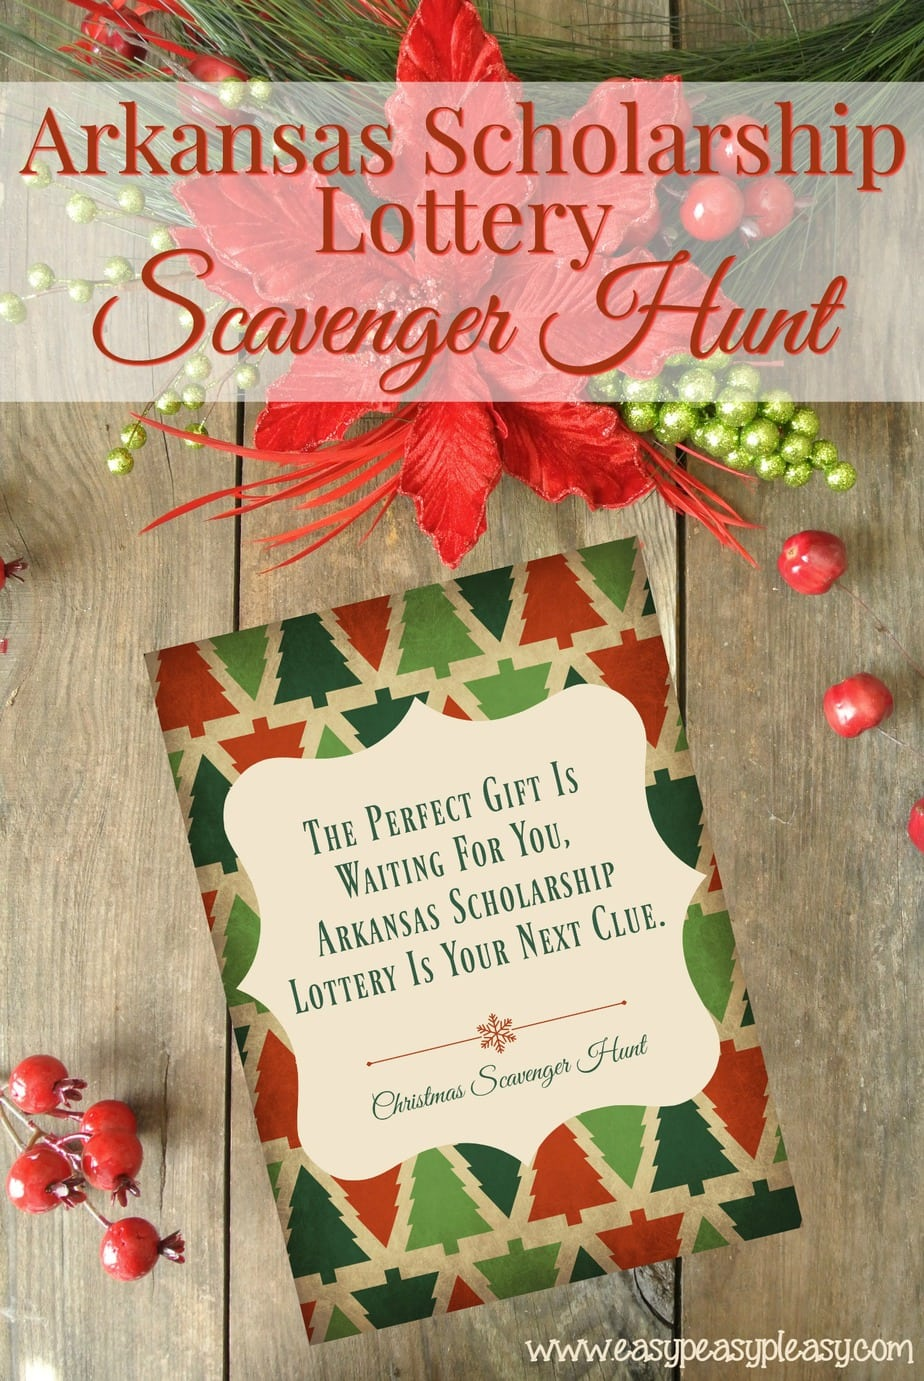 Christmas Scavenger Hunt With Free Printable Clues Easy Peasy Pleasy